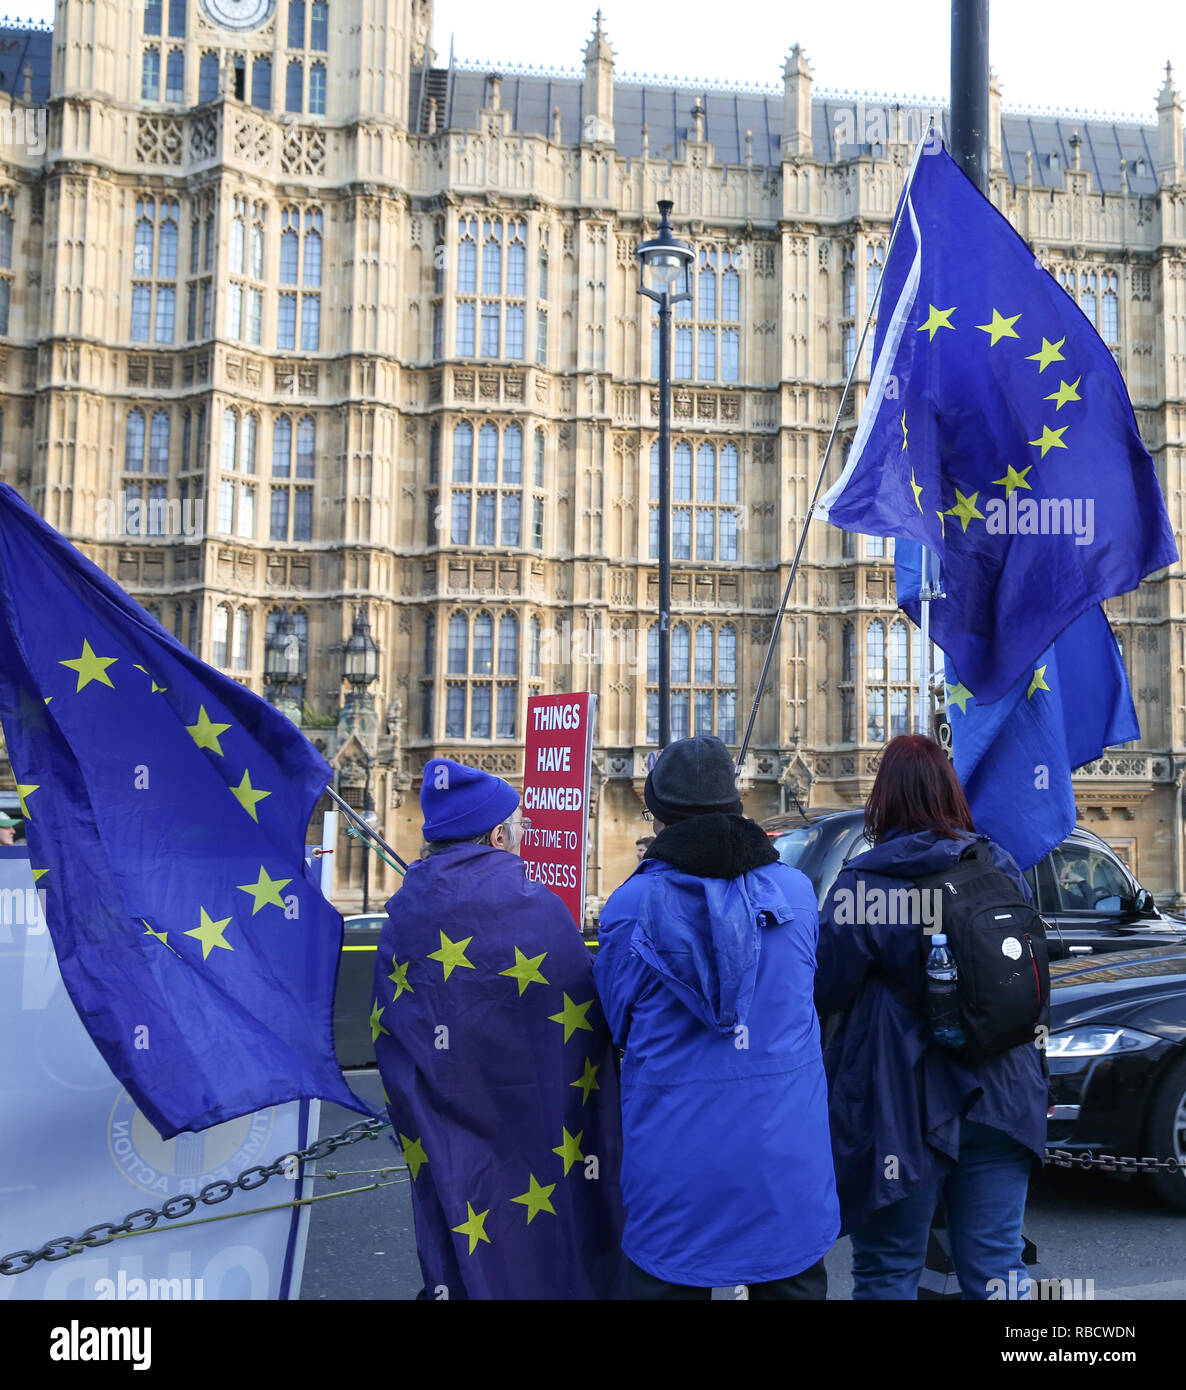 Anti-Brexit demonstrators seen waving European Union flags during the protest. Anti Brexit demonstrators gather outside the British Parliament a week before the MPs to vote on the finalized Brexit deal, MPs will vote on Theresa May's Brexit deal on Tuesday, 15 January.' - Stock Image